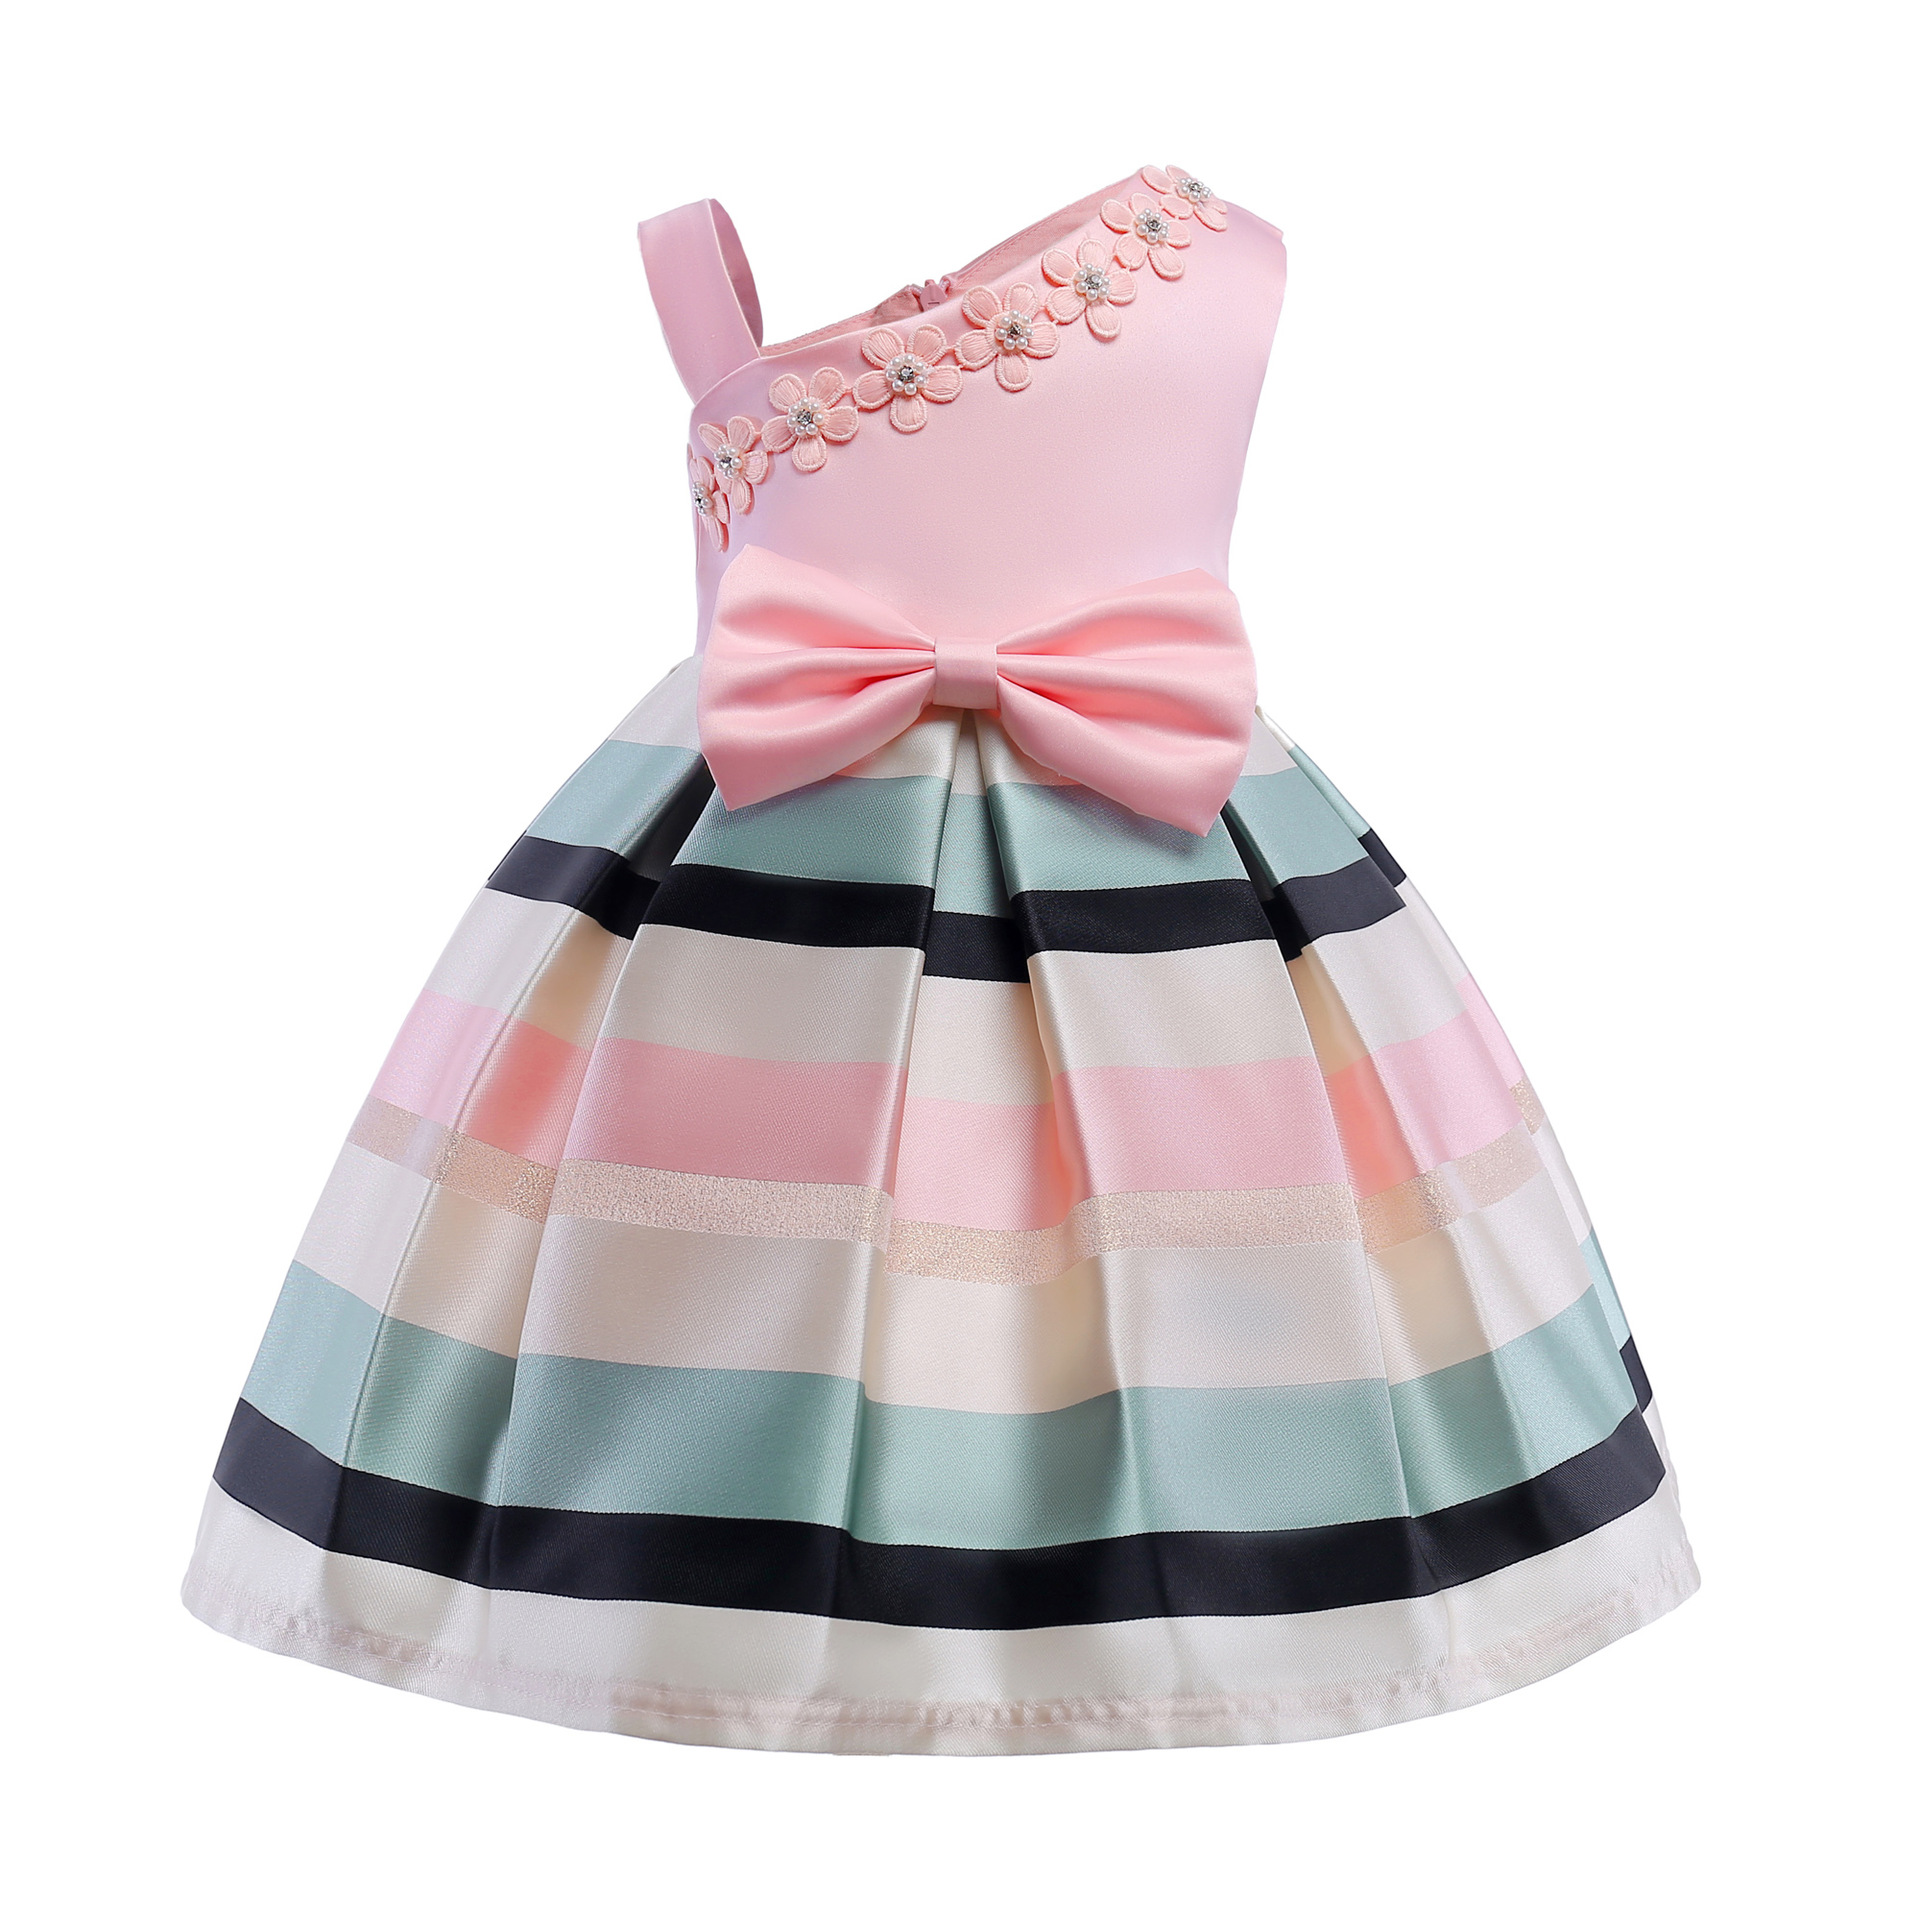 2018 Spring New Style Girls Pearl Flowers   Cocktail     Dress   Shoulder Strap Stripes   Dress   Children's Clothing Formal Wedding Party